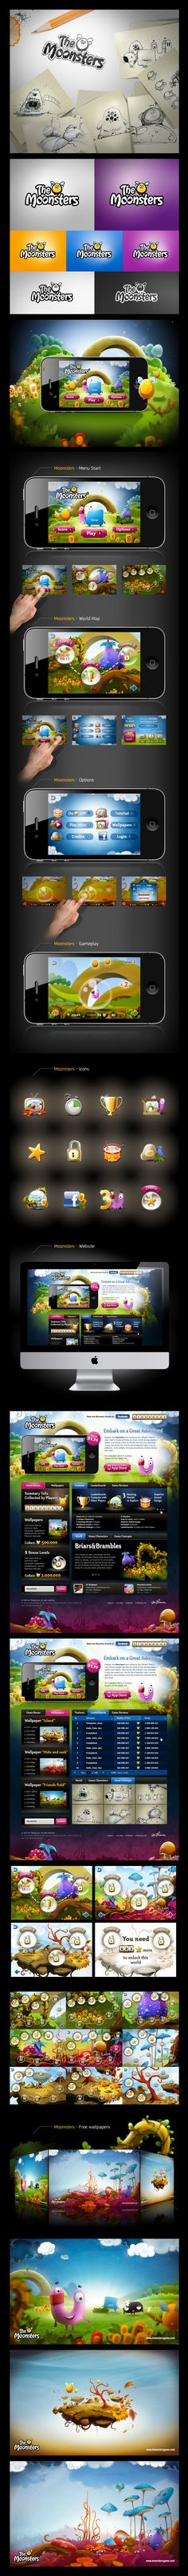 The Moonsters - iPhone Game - | #webdesign #it #web #design #layout #userinterface #website #webdesign <<< repinned by an #advertising #agency from #Hamburg / #Germany - www.BlickeDeeler.de | Follow us on www.facebook.com/BlickeDeeler